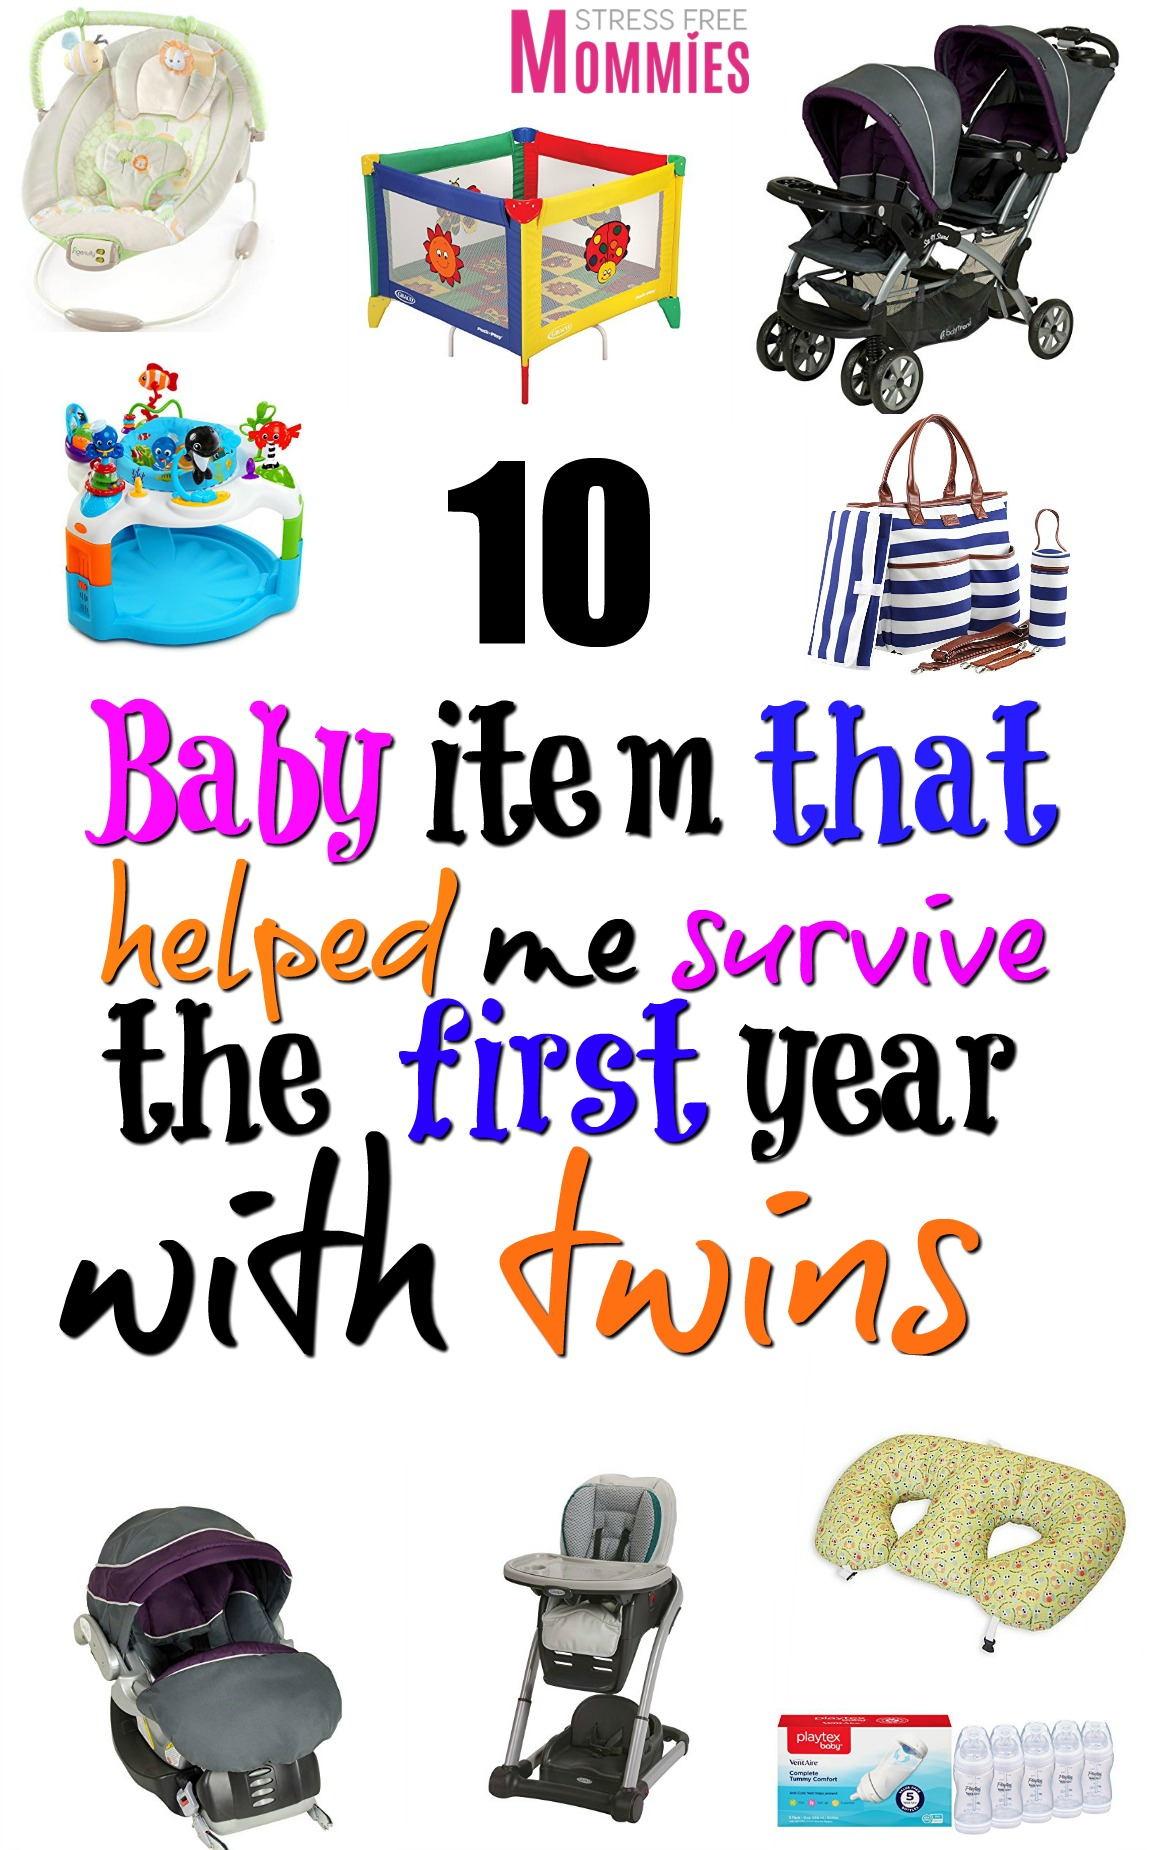 10 baby items that helped me survive the first year with twins - A detailed list of the baby items you need to survive the first year with twins. #twins #twinmom #babies